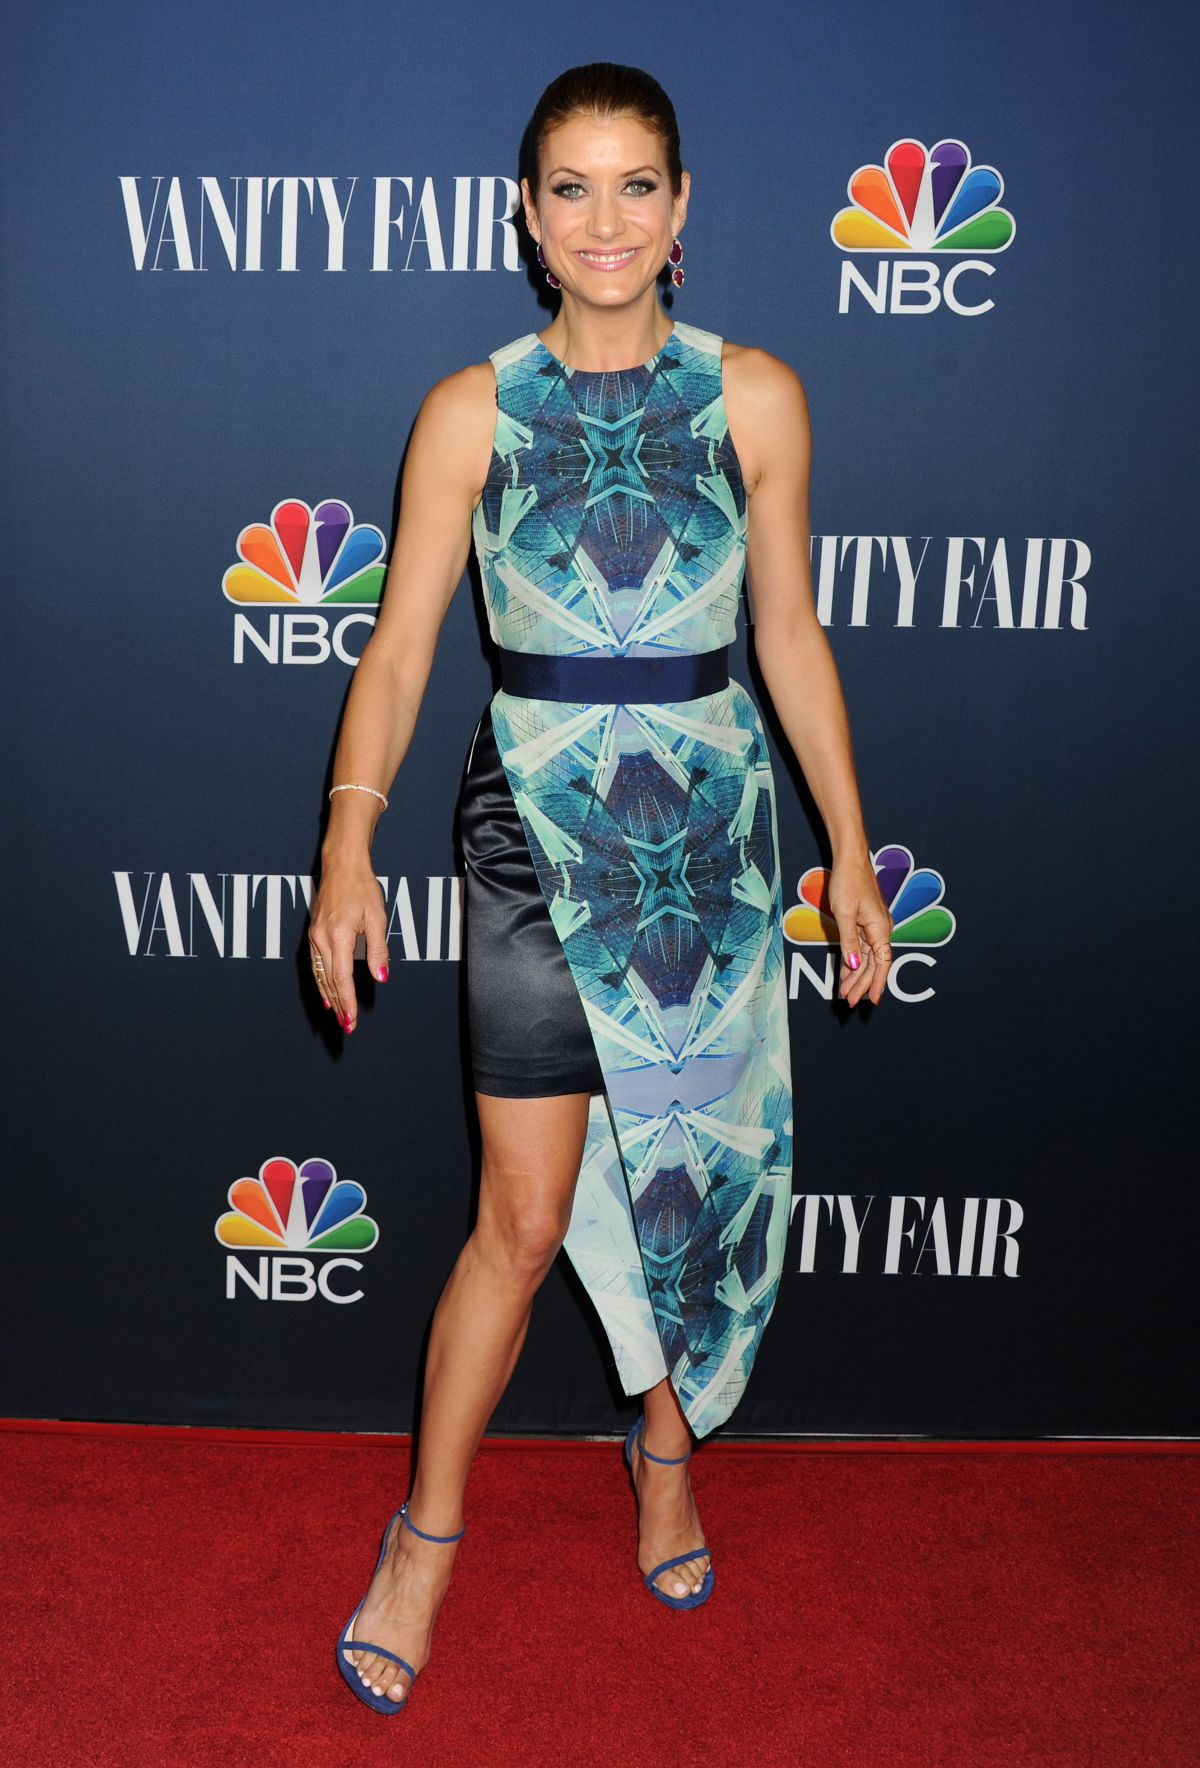 Kate Walsh roles